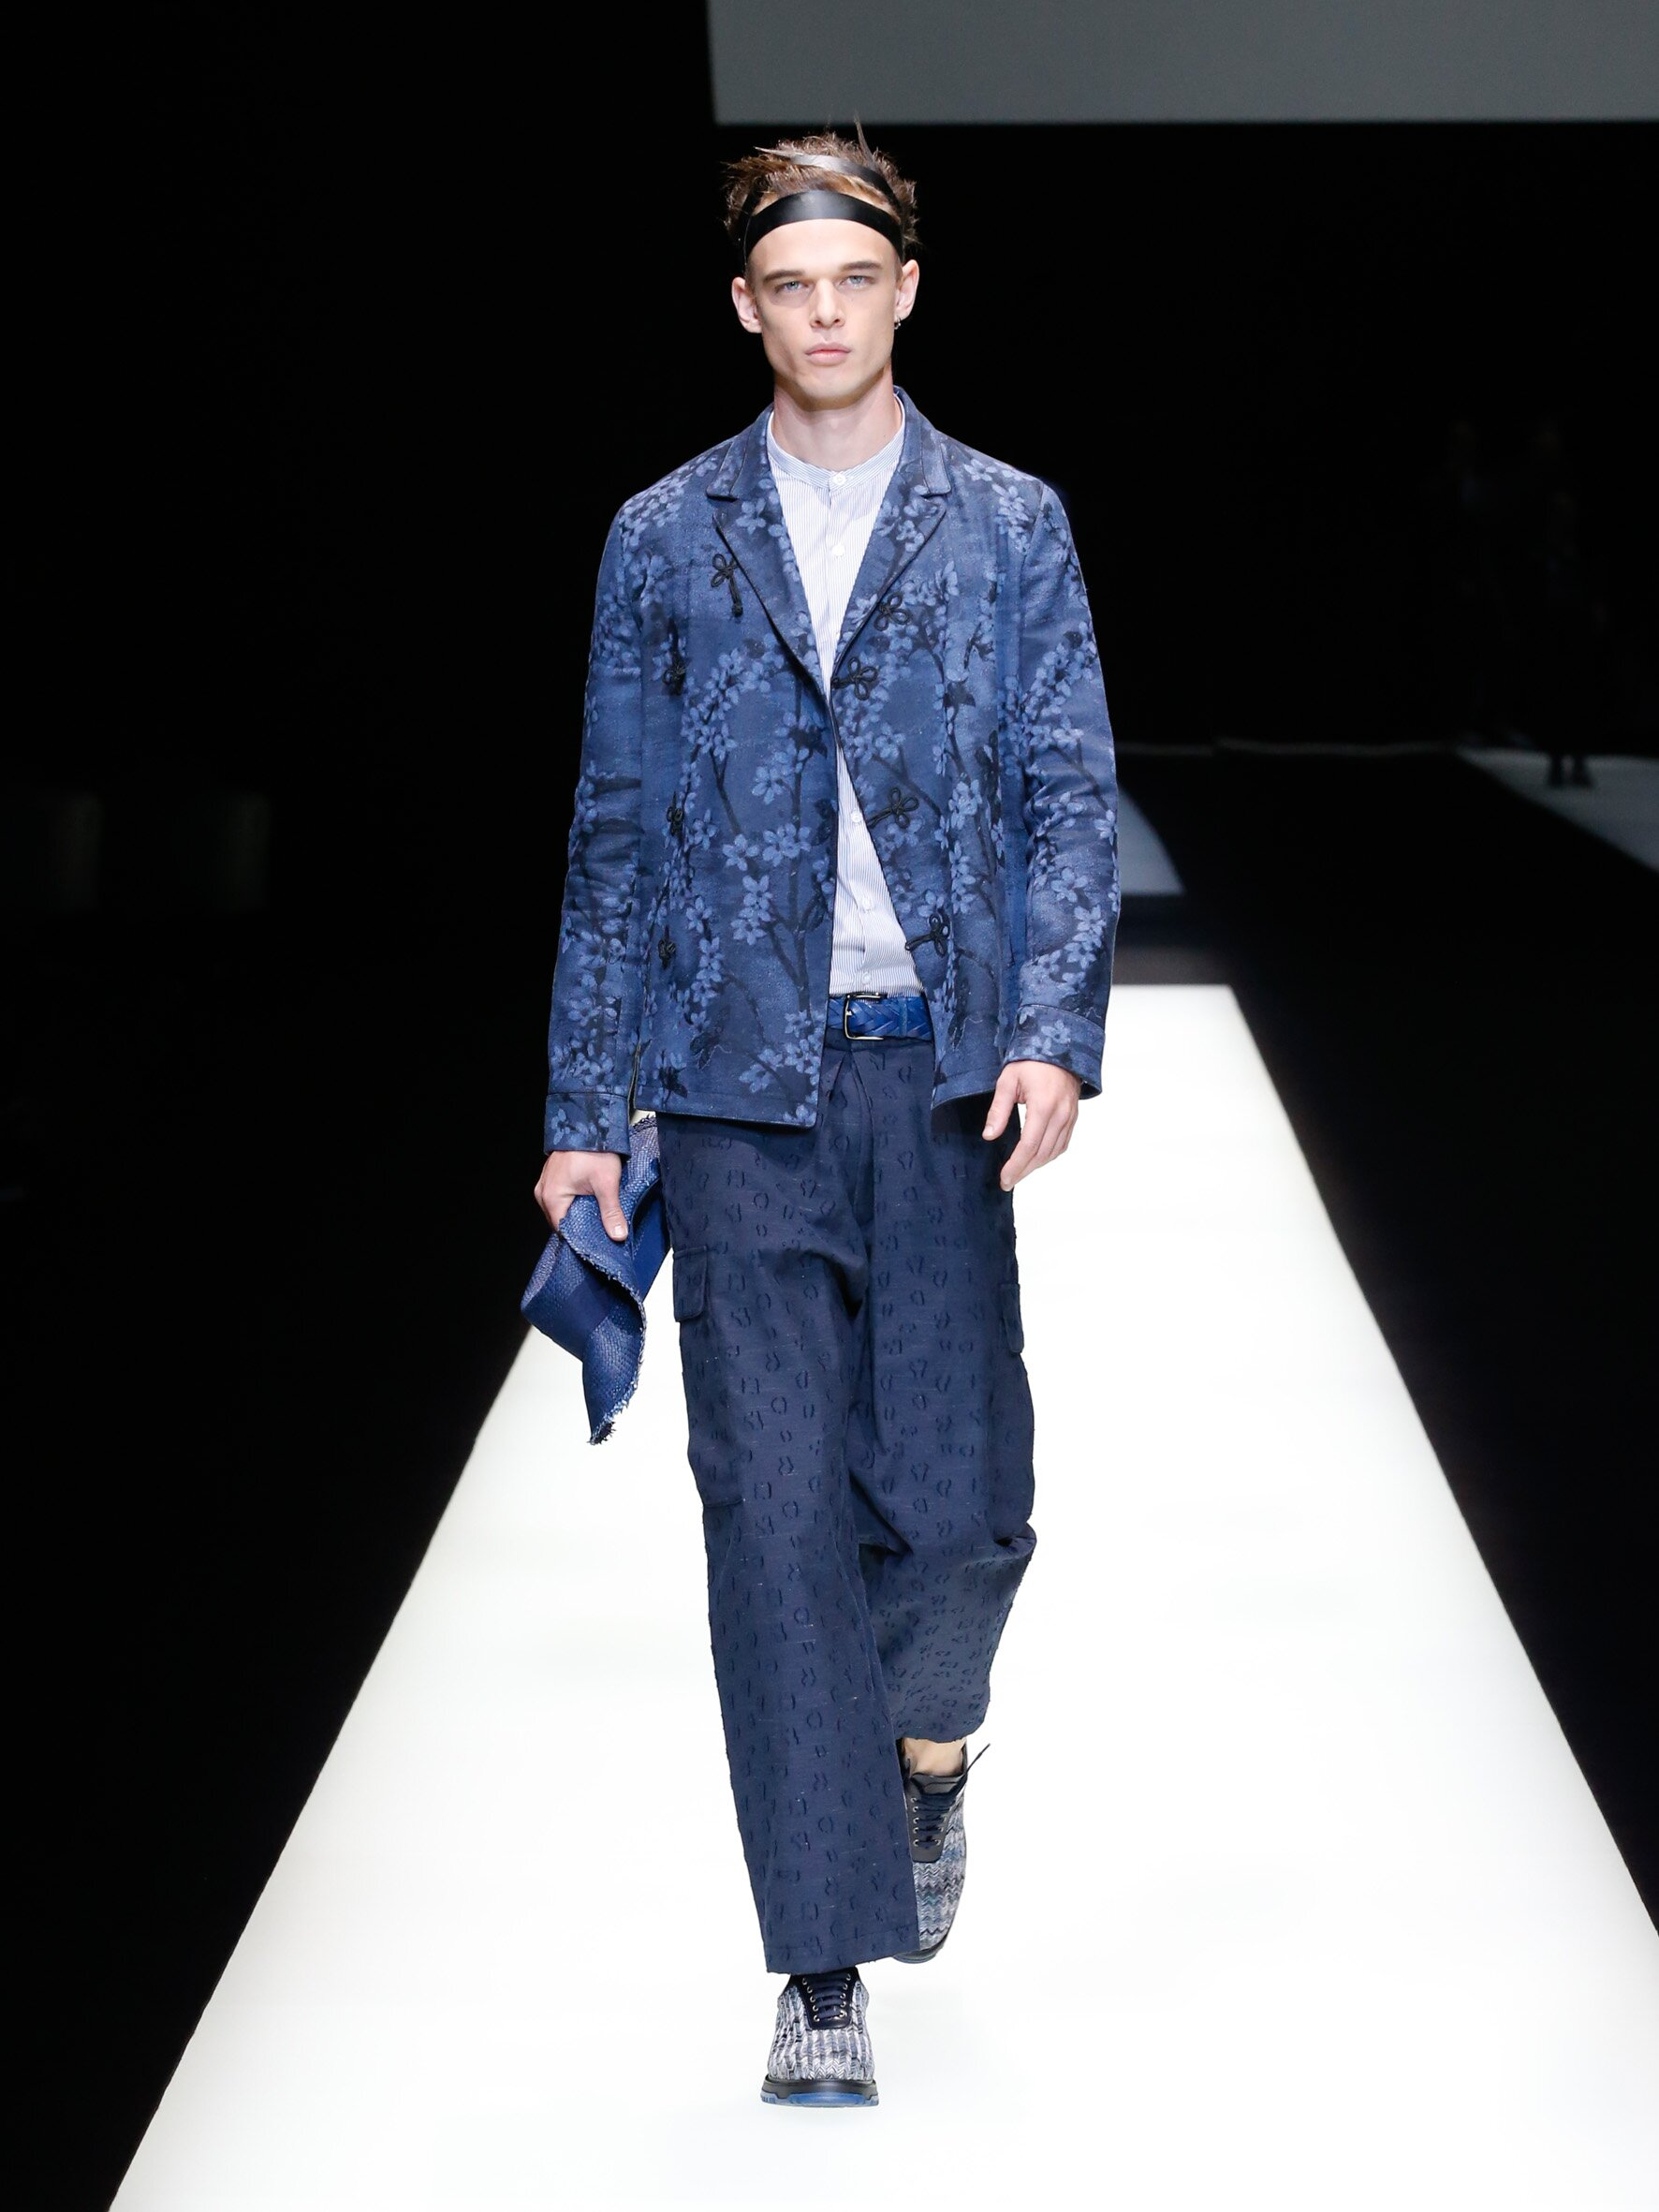 EMPORIO ARMANI SPRING SUMMER 2018 MEN S COLLECTION   The Skinny Beep 43bee7df50